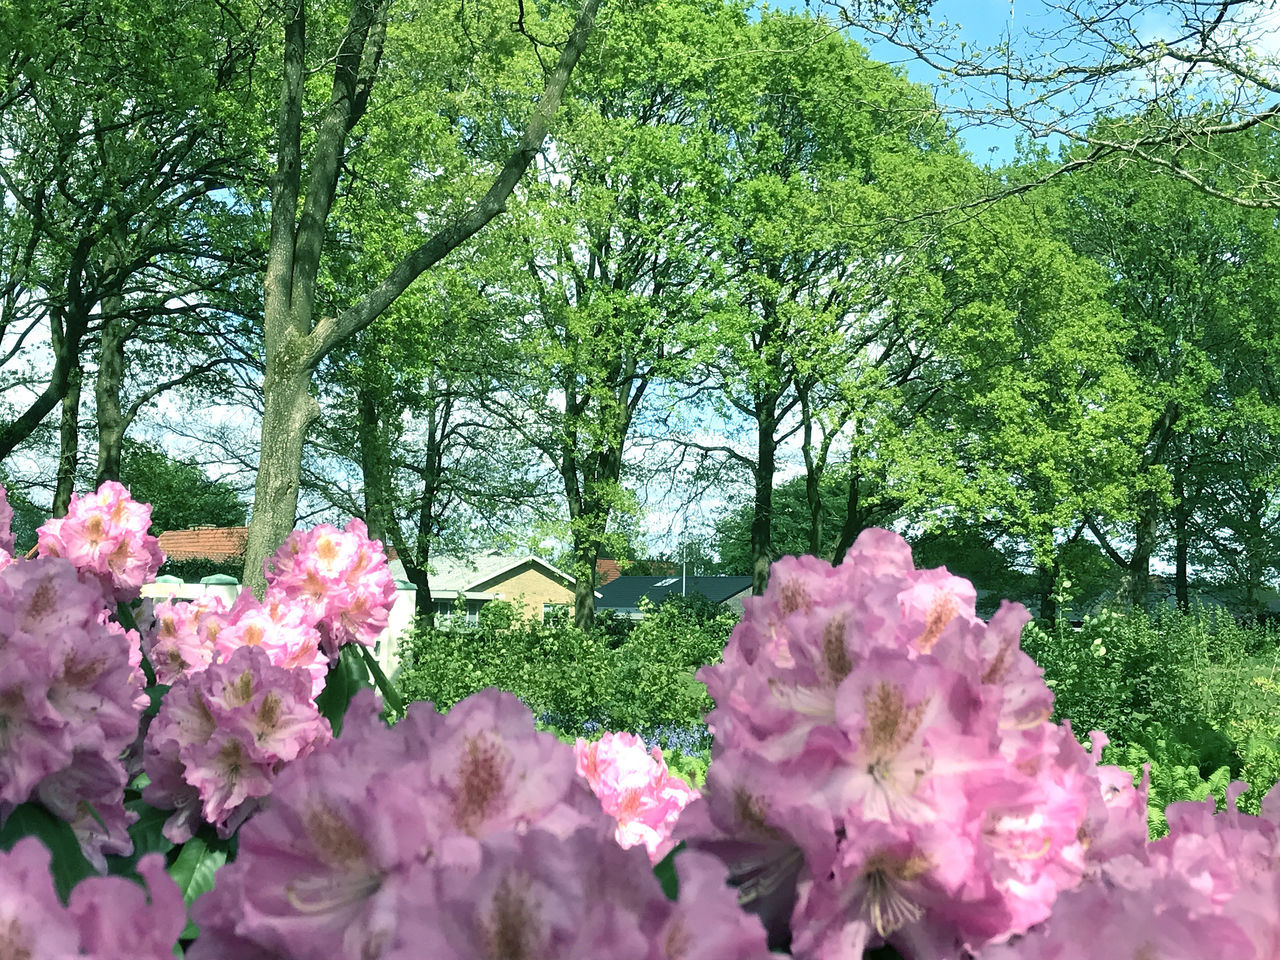 Flowers in the city park under spring Beauty Beauty In Nature Blossom Blue City Colorful Day Floral Flower Flowers Grass Green Growth Leafs Nature No People Park Pink Color Plant Plant Rhododendron Season  Spring Summer Tree